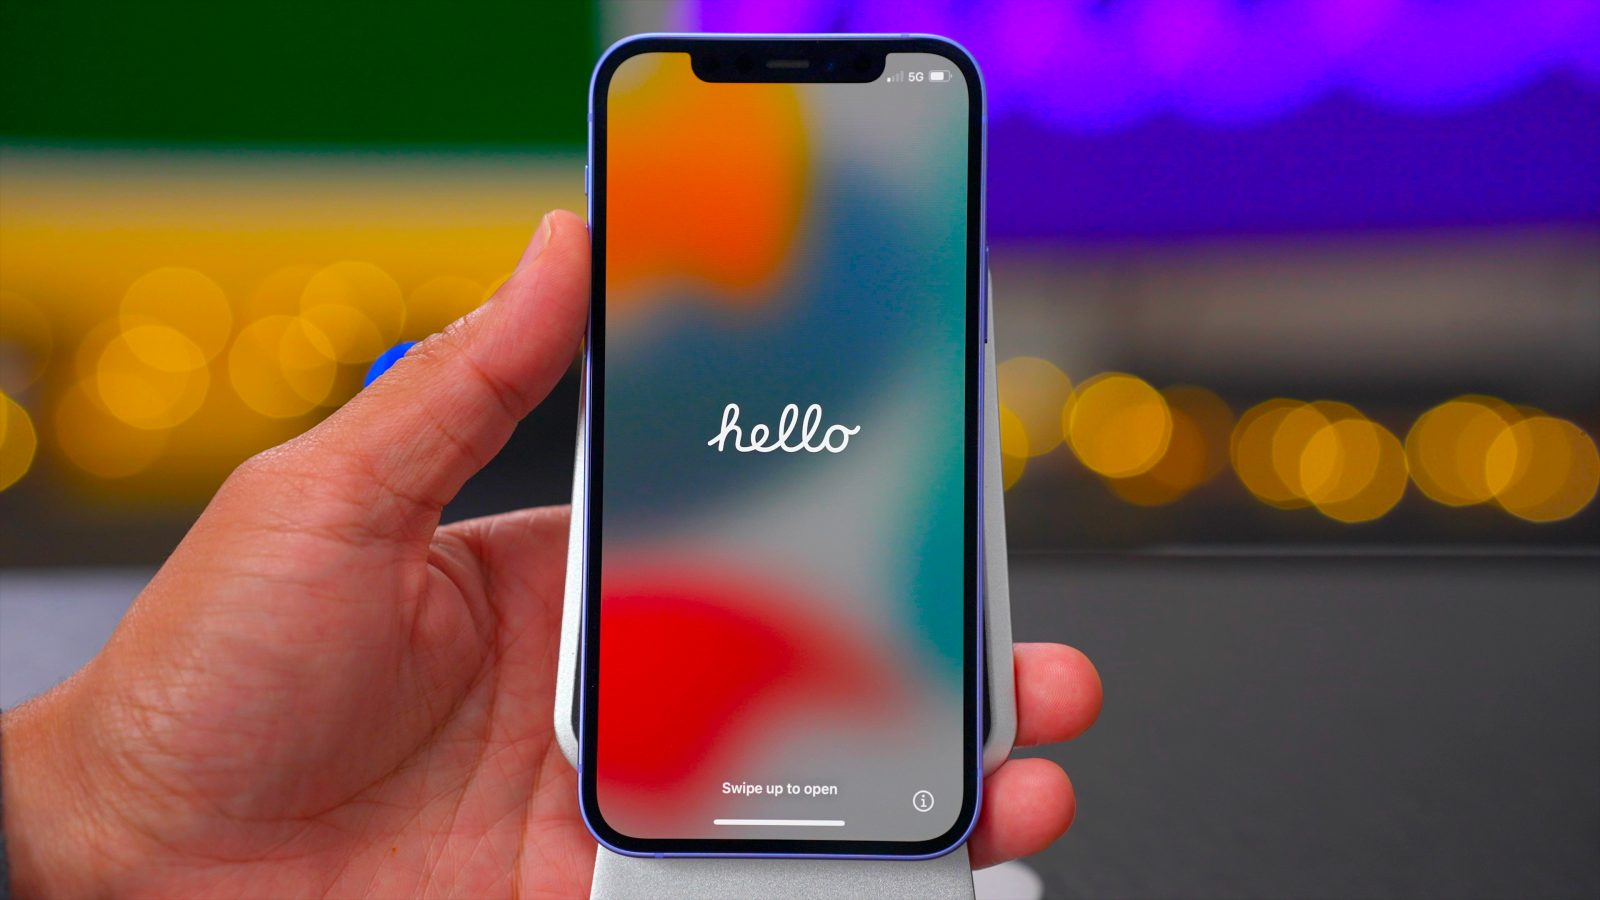 iOS 15 beta hands-on: 300+ changes and features [Video] - 9to5Mac